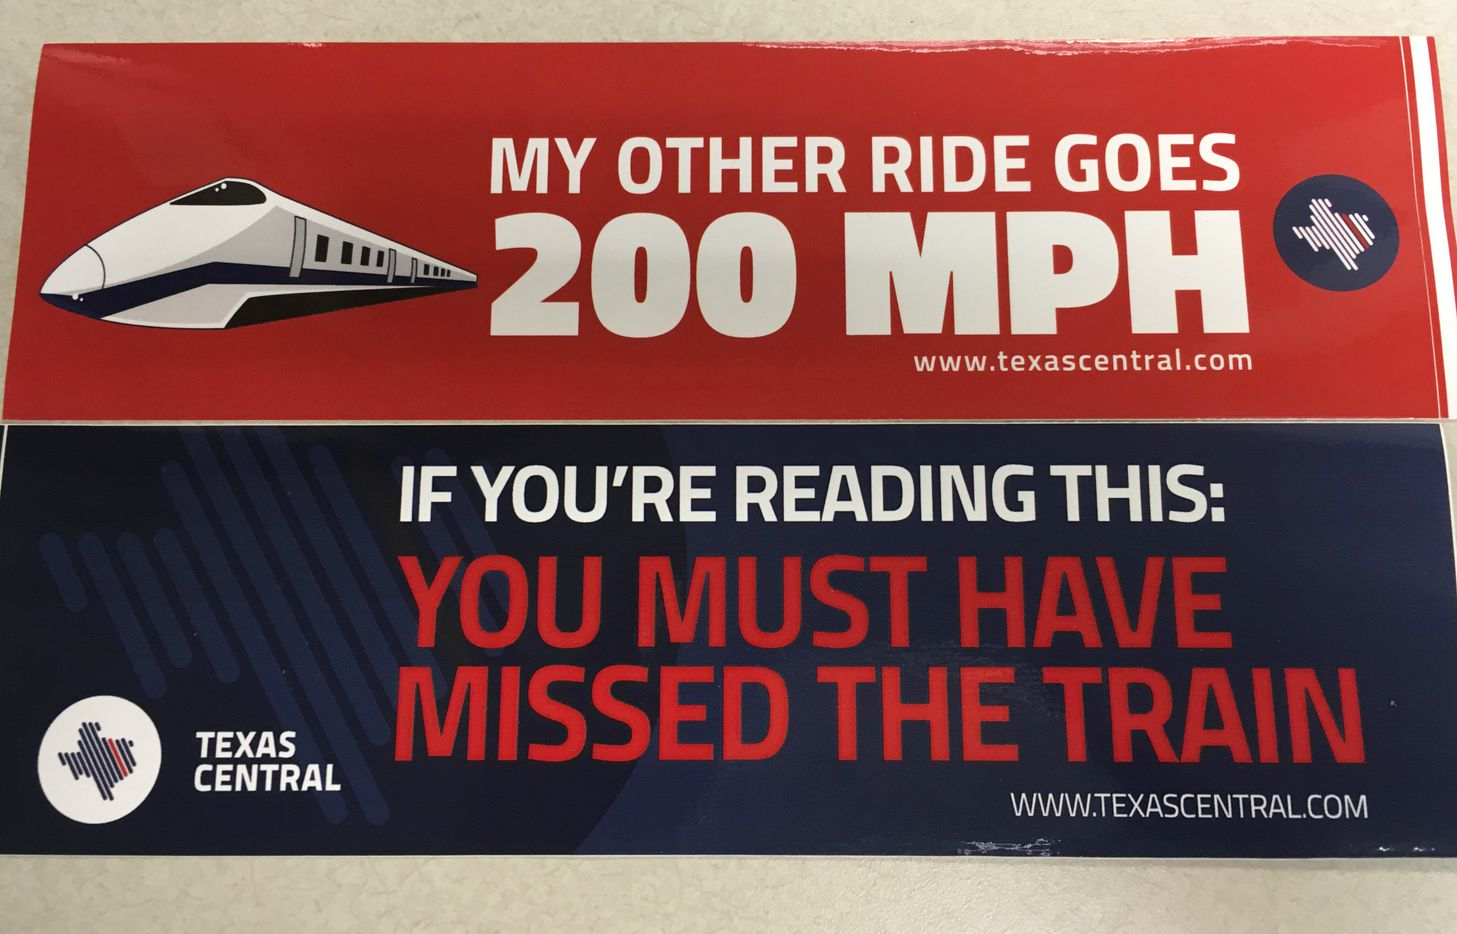 Backers of a bullet train between Dallas and Houston have used various marketing slogans to promote their project.